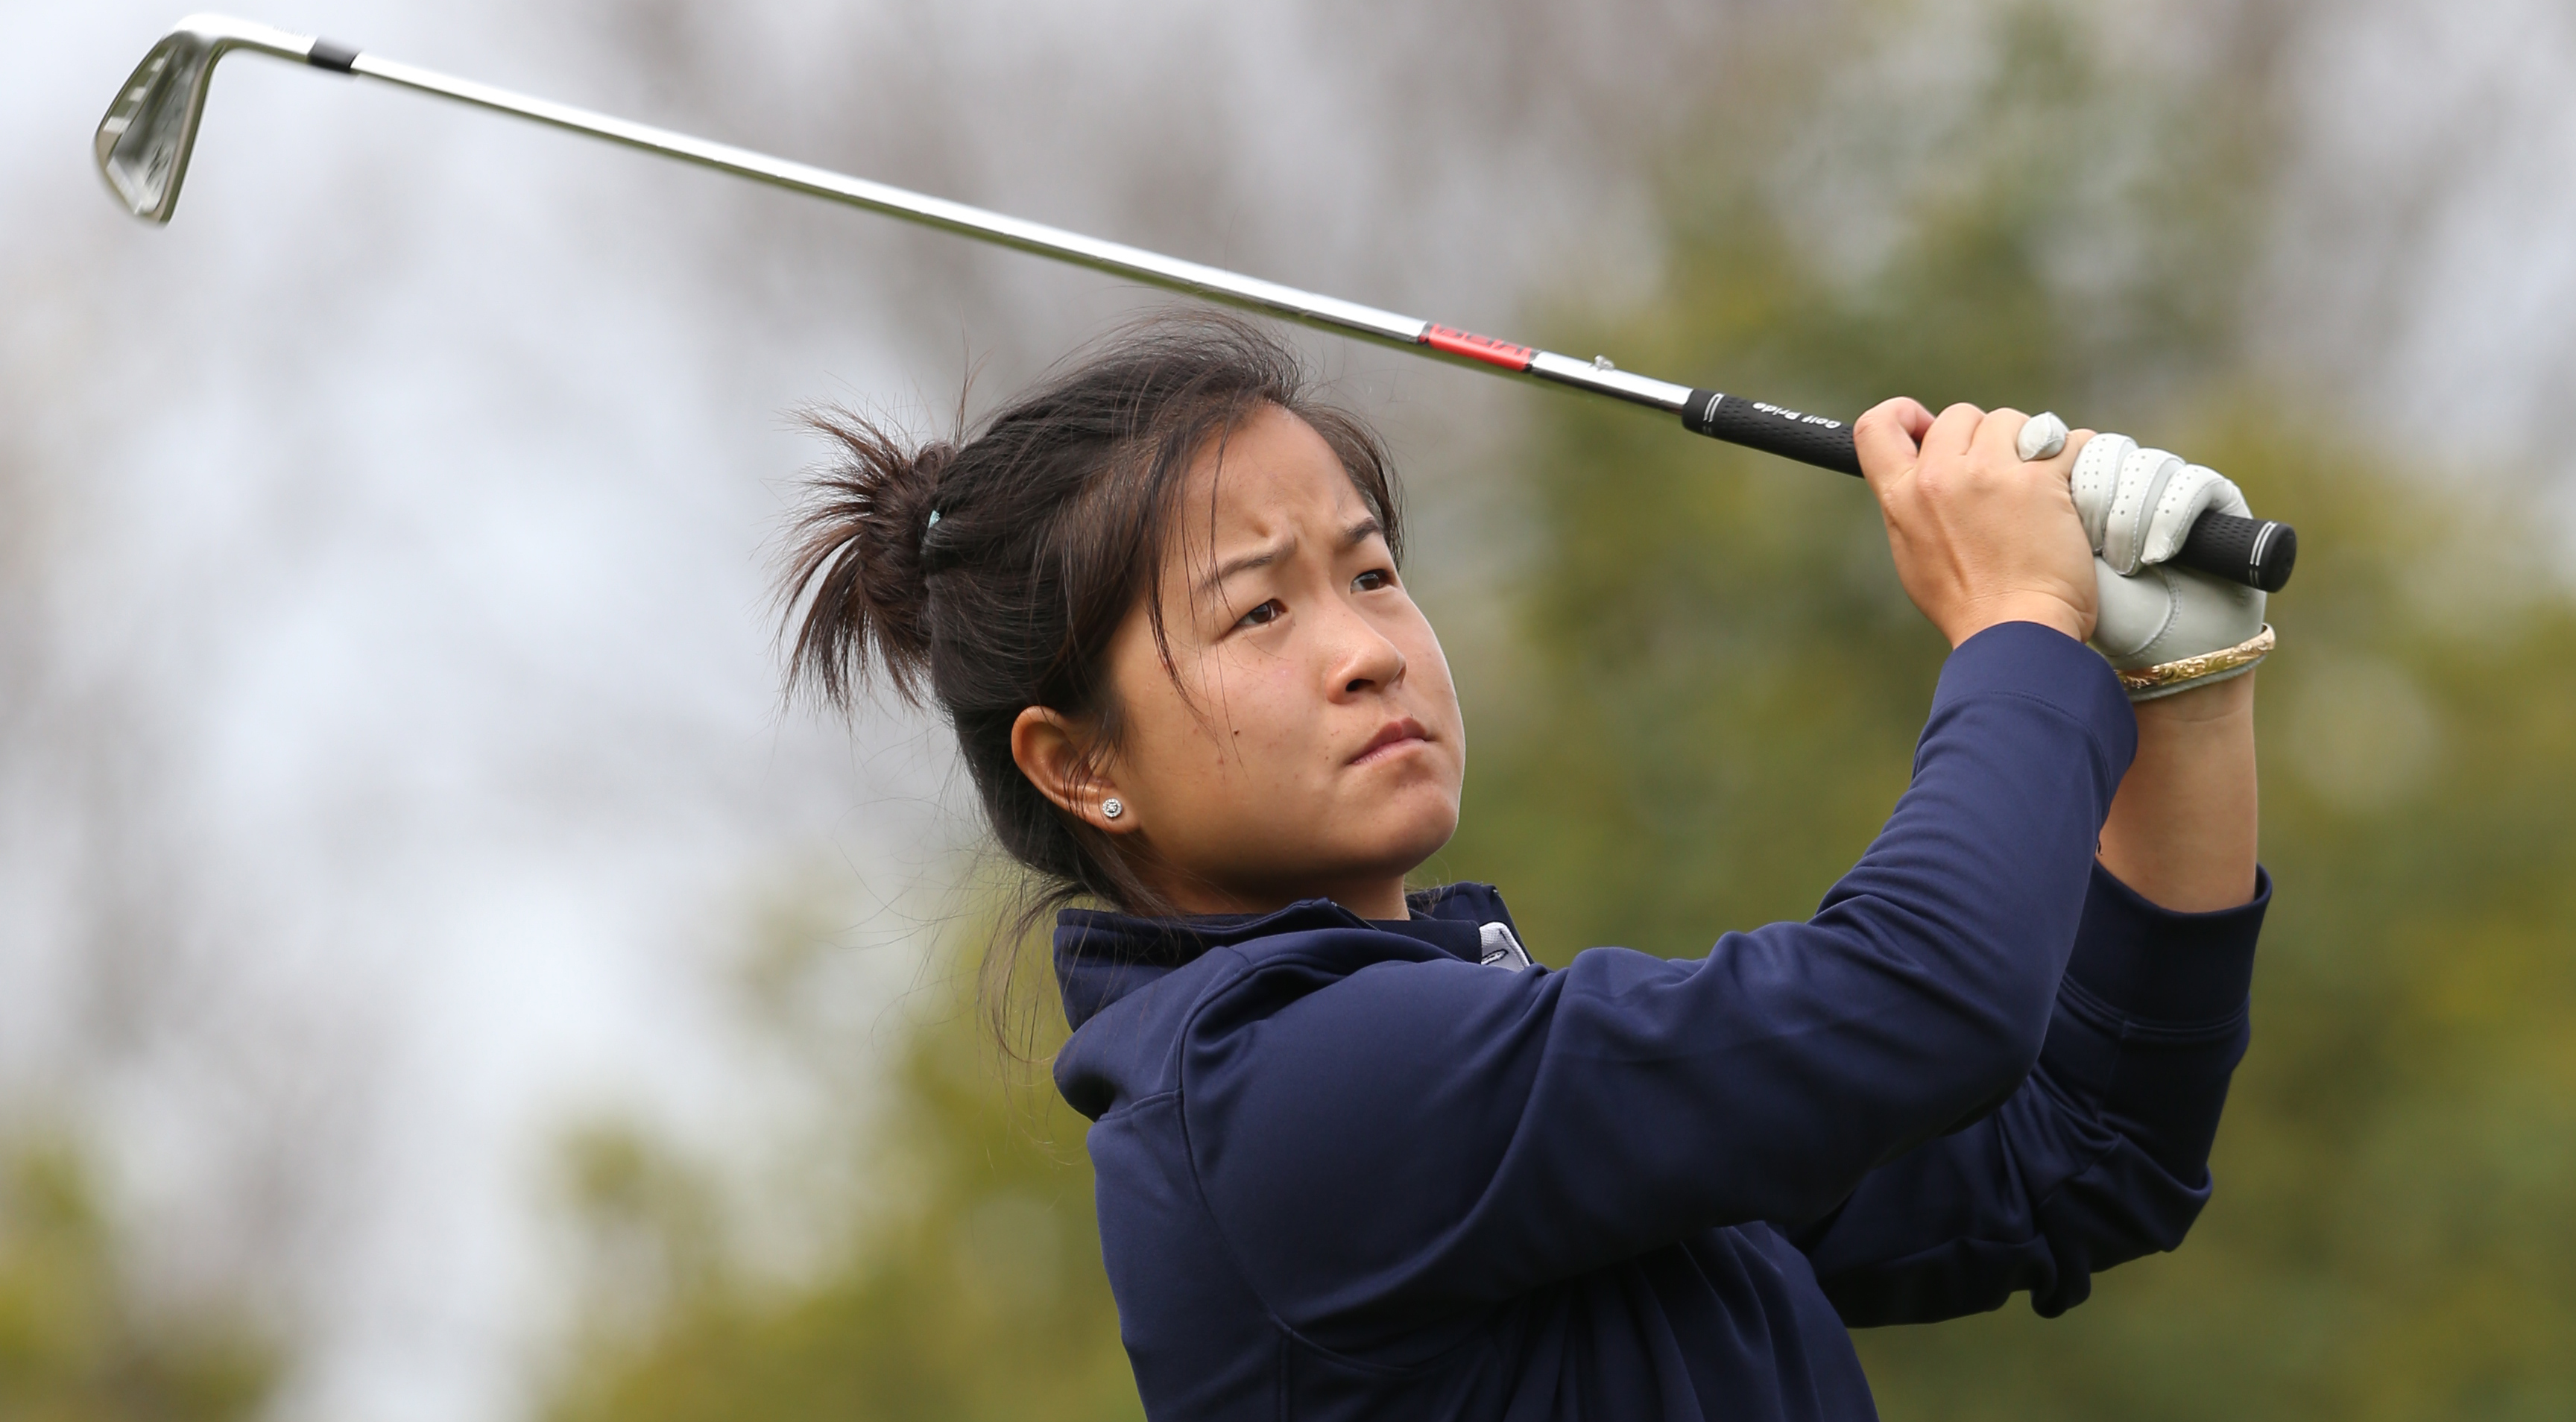 The Pepperdine Waves, led by Marissa Chow, rank No. 12 in Golfweek's countdown of the top women's college golf teams for fall 2014.